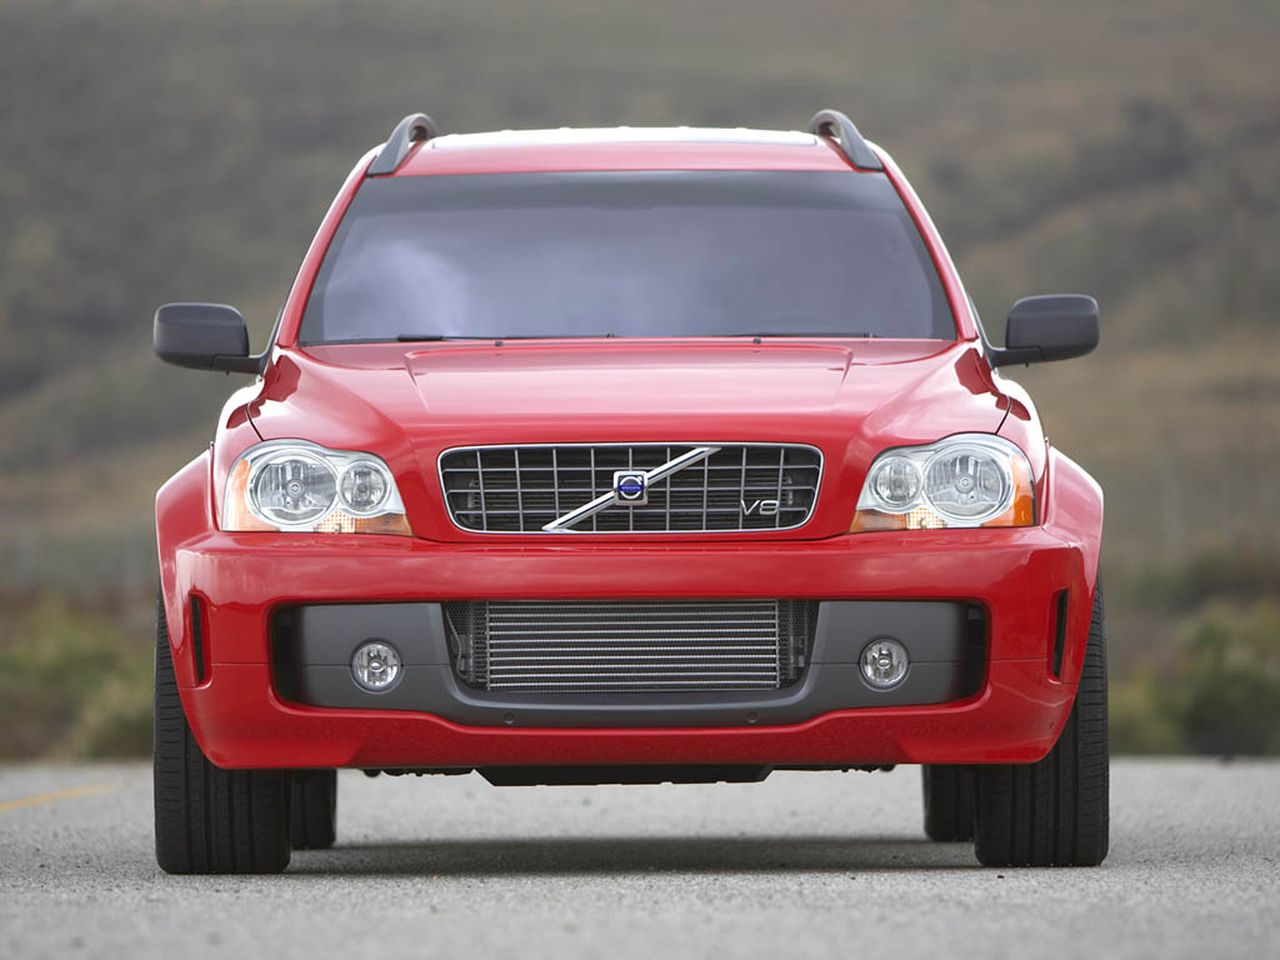 Volvo XC90 2004 PUV Concept - I've got the power !! 26